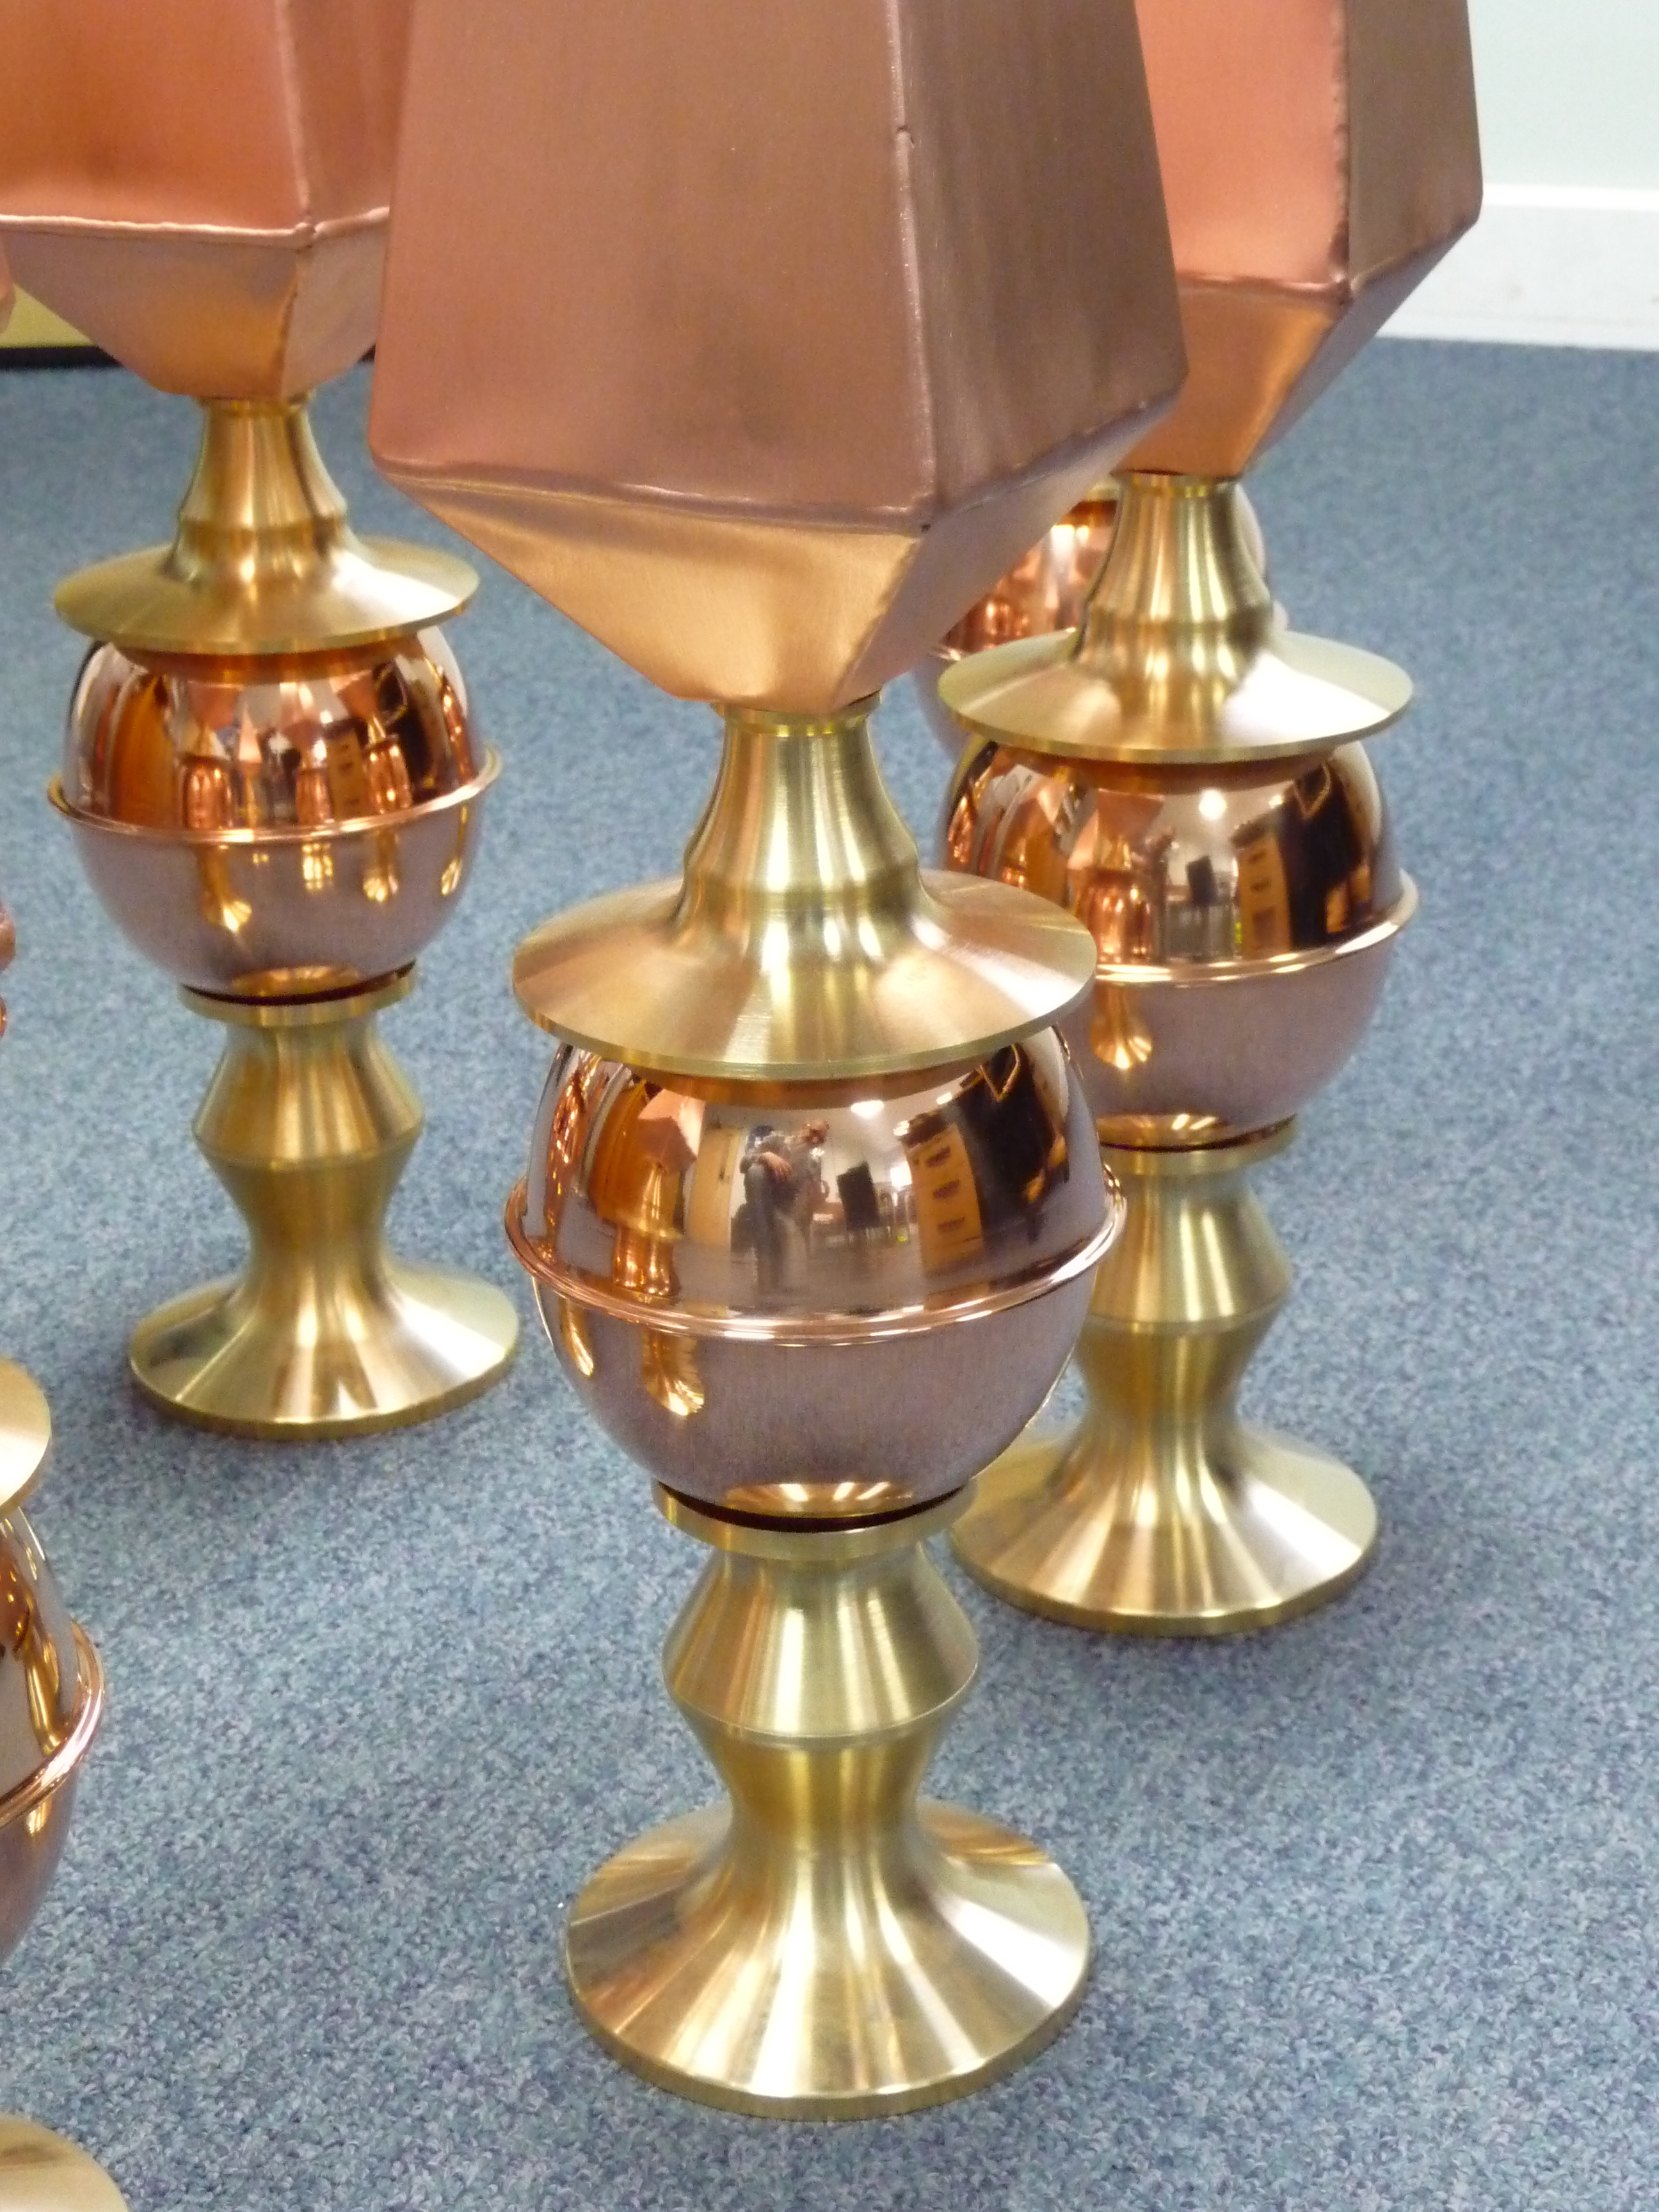 Copper and brass finials